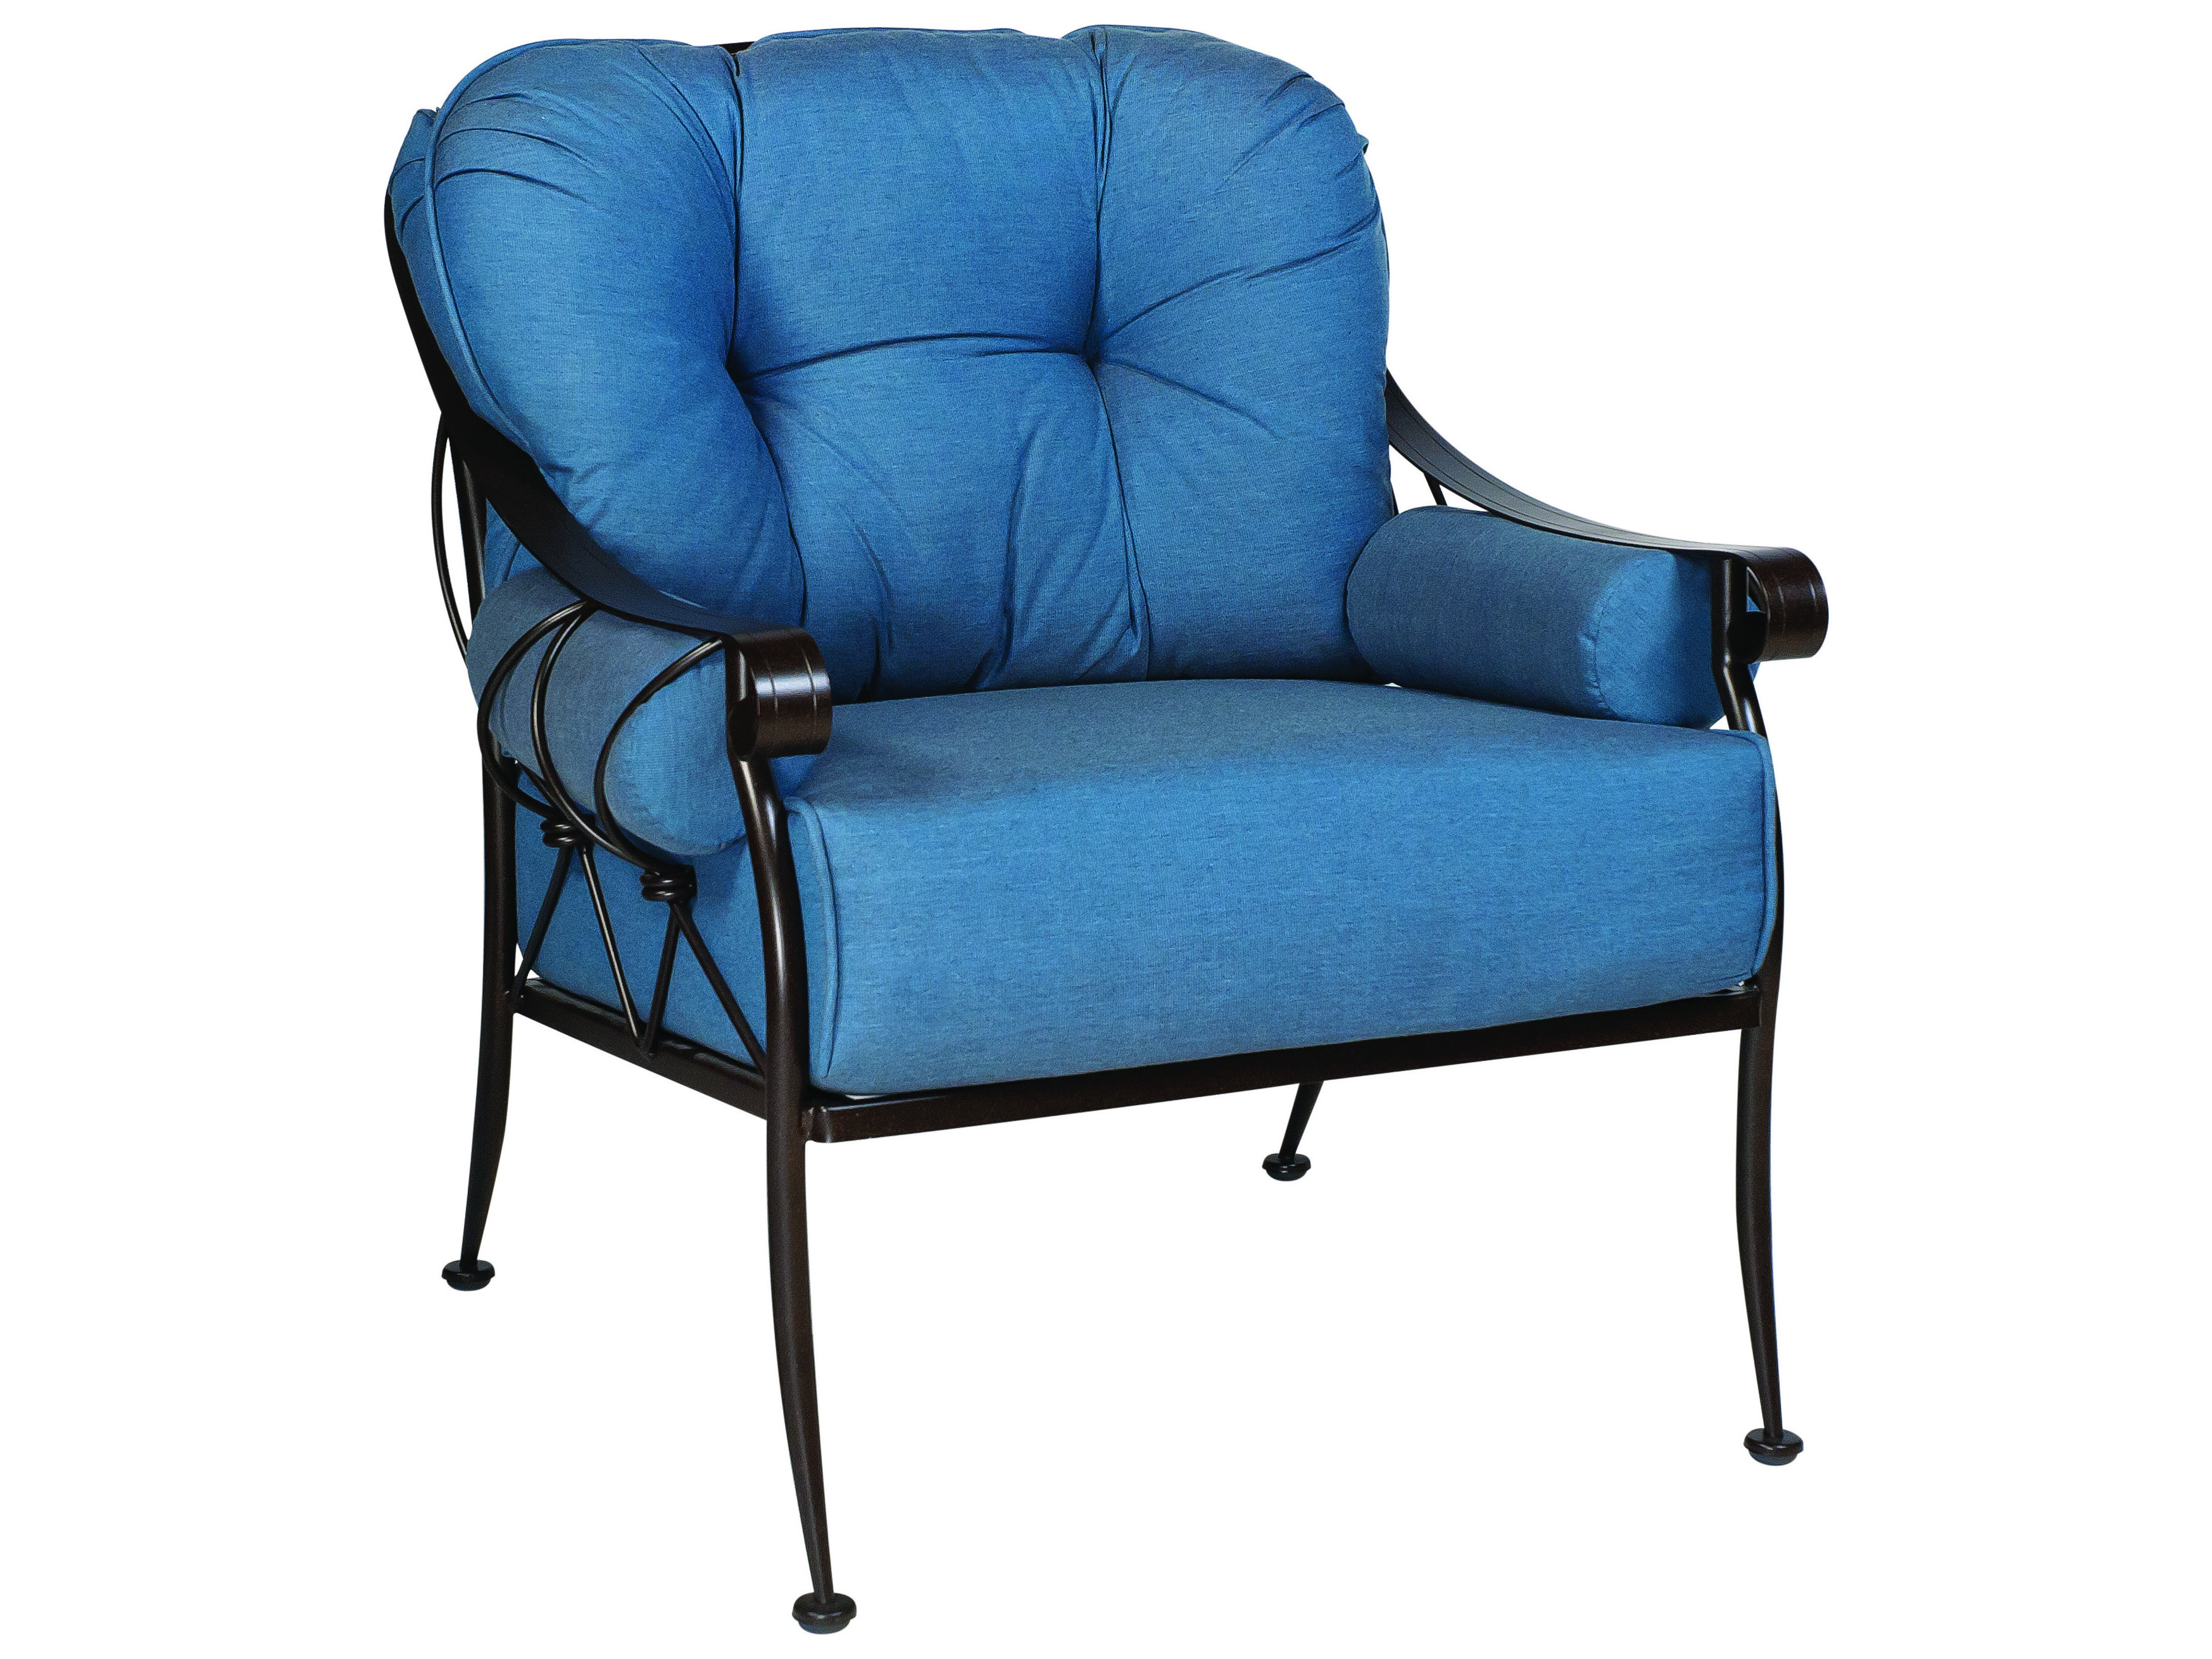 wrought iron chairs woodard derby wrought iron cushion lounge chair 4t0106 31263